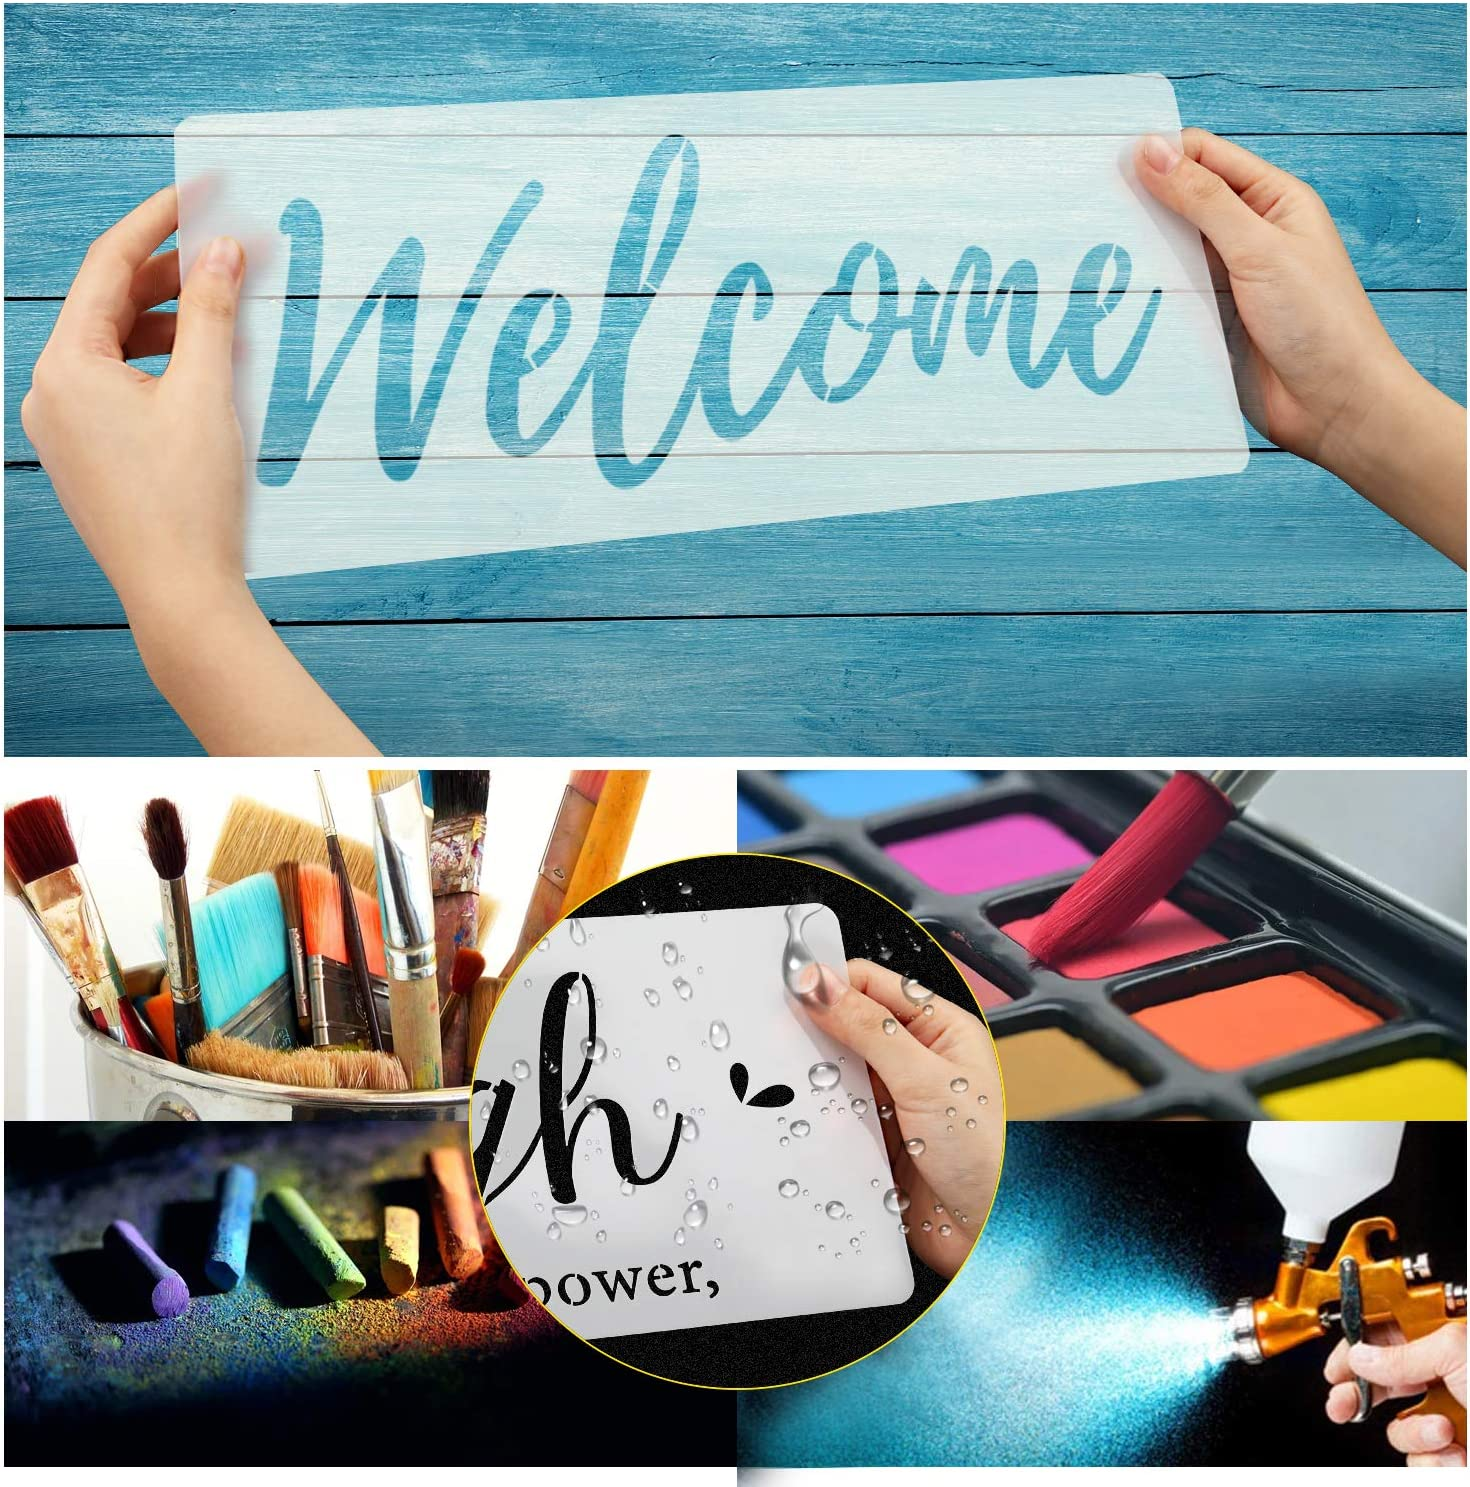 Funny Family Sign Stencil Welcome Home Reusable Stencils Essential Inspirational Stenciling Kit Templat for Painting on Wood Farmhouse DIY Home D/écor